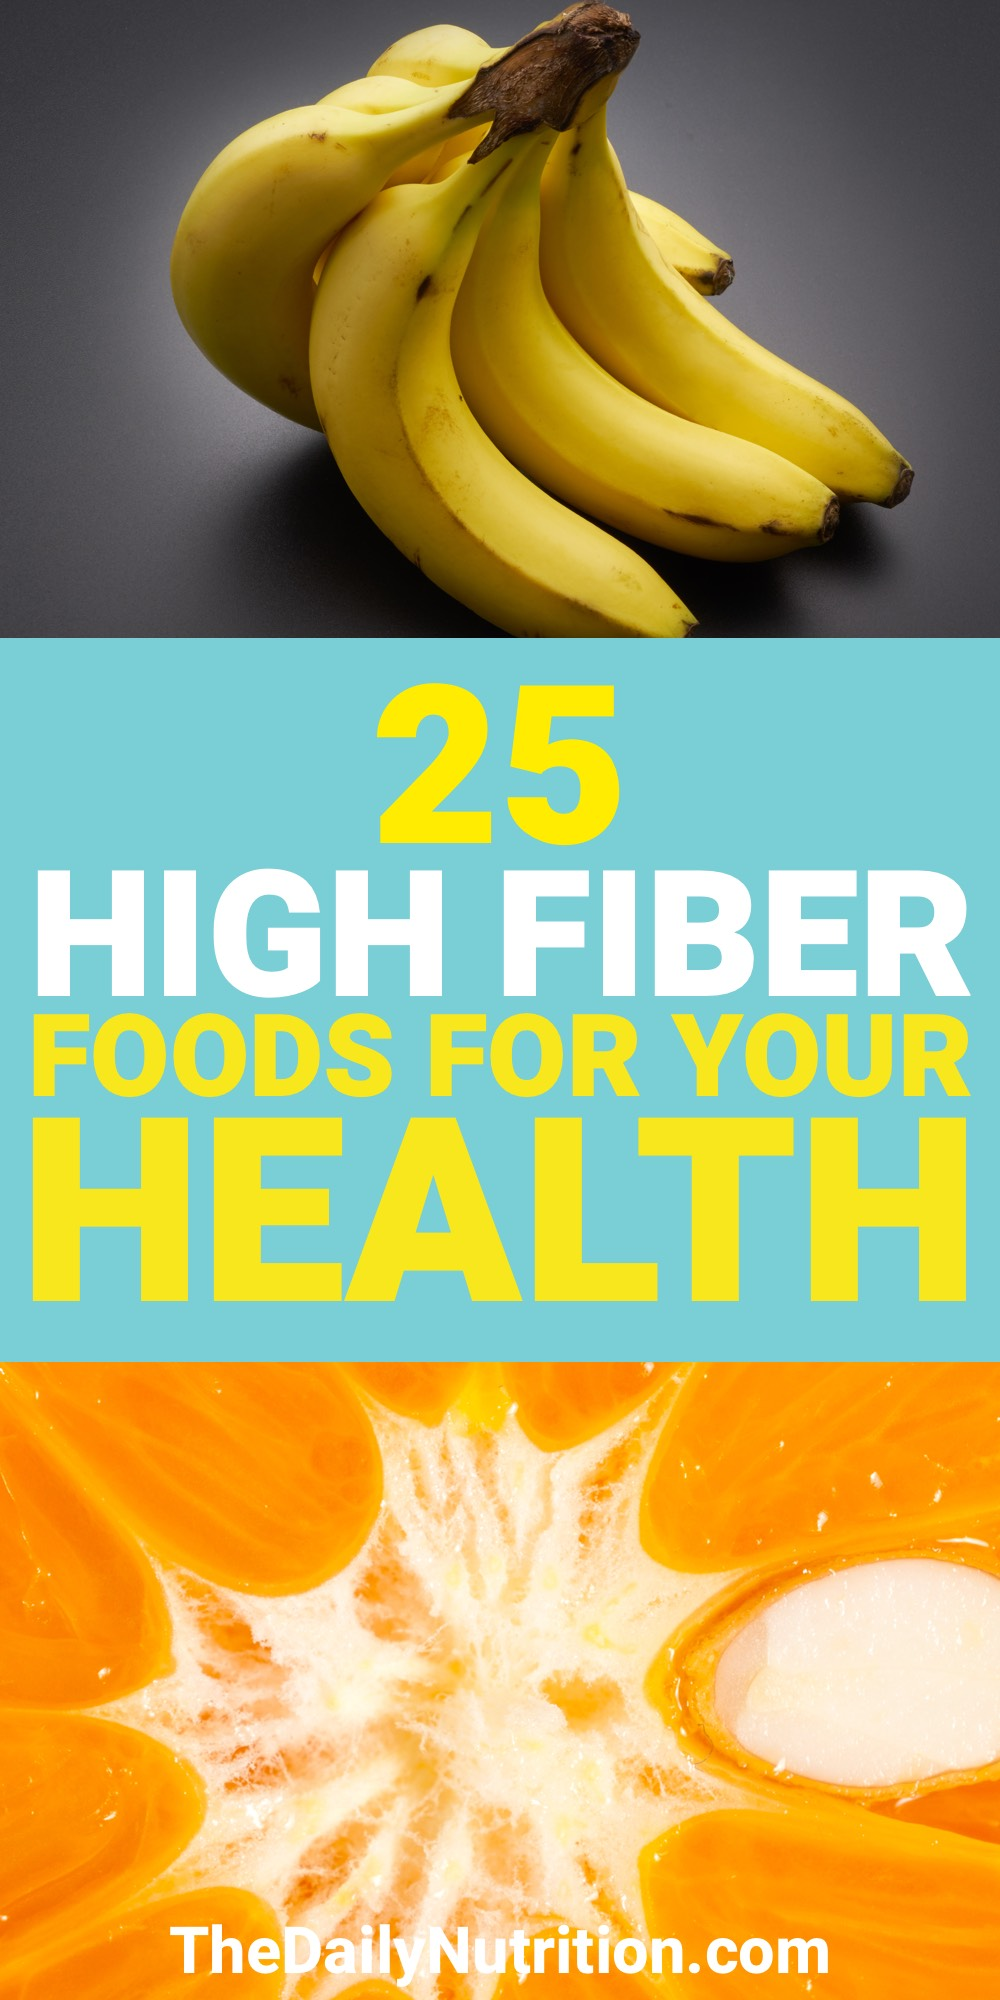 Getting the fiber you need on a daily basis is never easy. Here are 25 high fiber foods that you need.